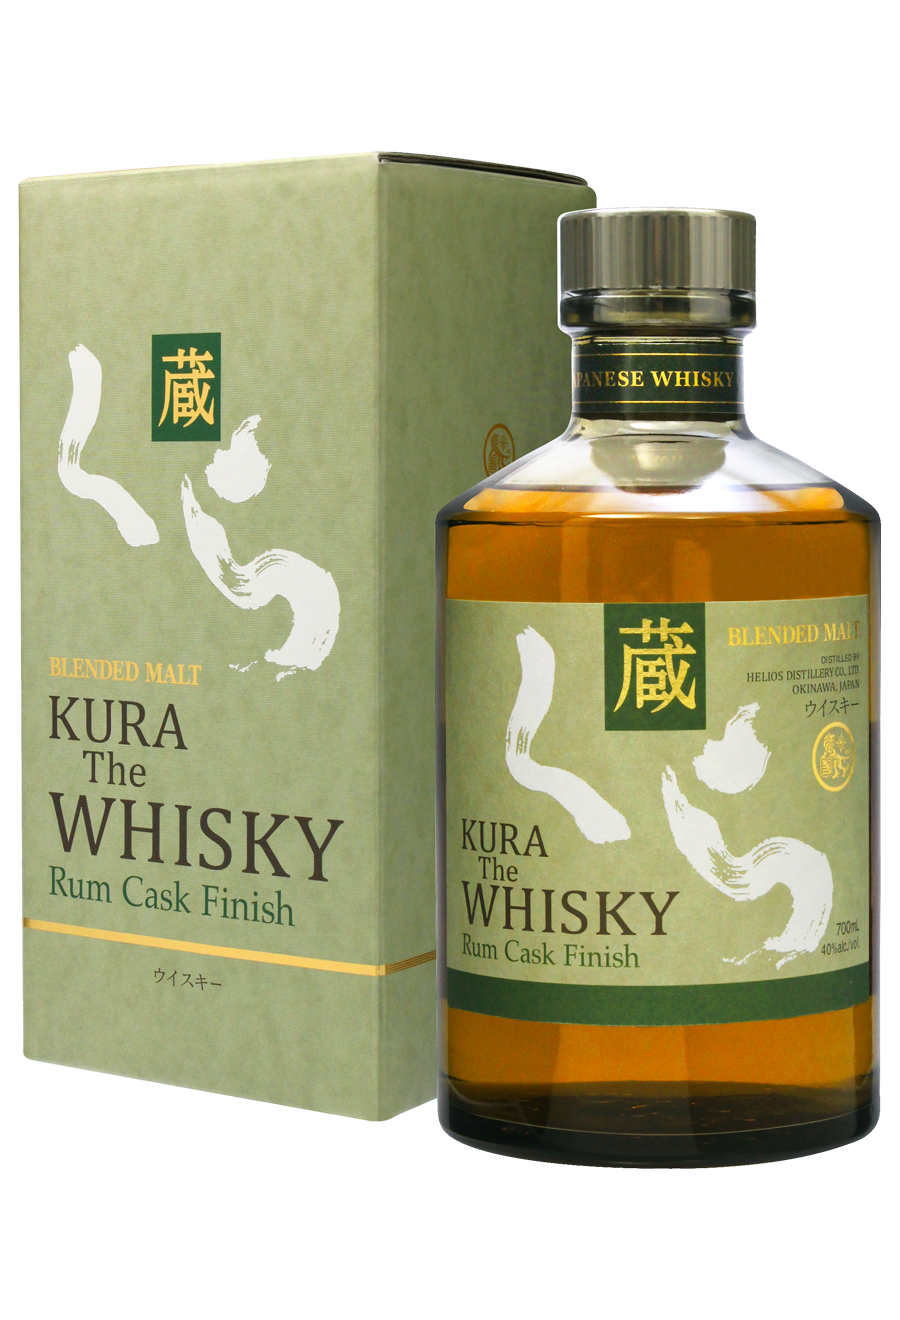 Kura Rum Cask Finish Japanese Whisky 0,7l